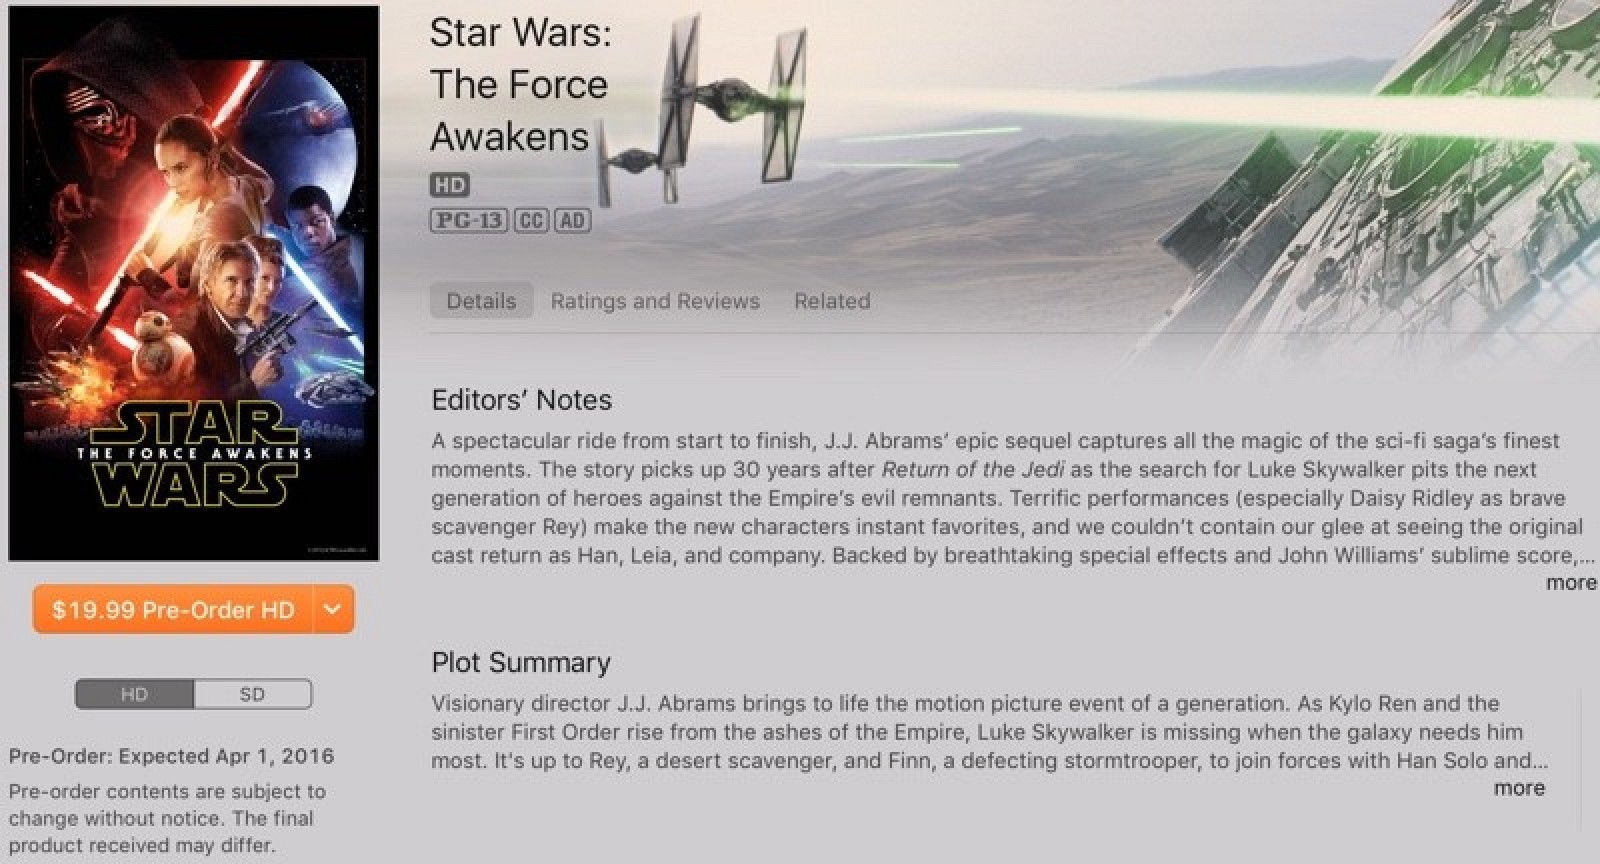 Star wars the force awakens coming to itunes on april 1 mac rumors star wars the force awakens coming to itunes on april 1 mac rumors malvernweather Gallery